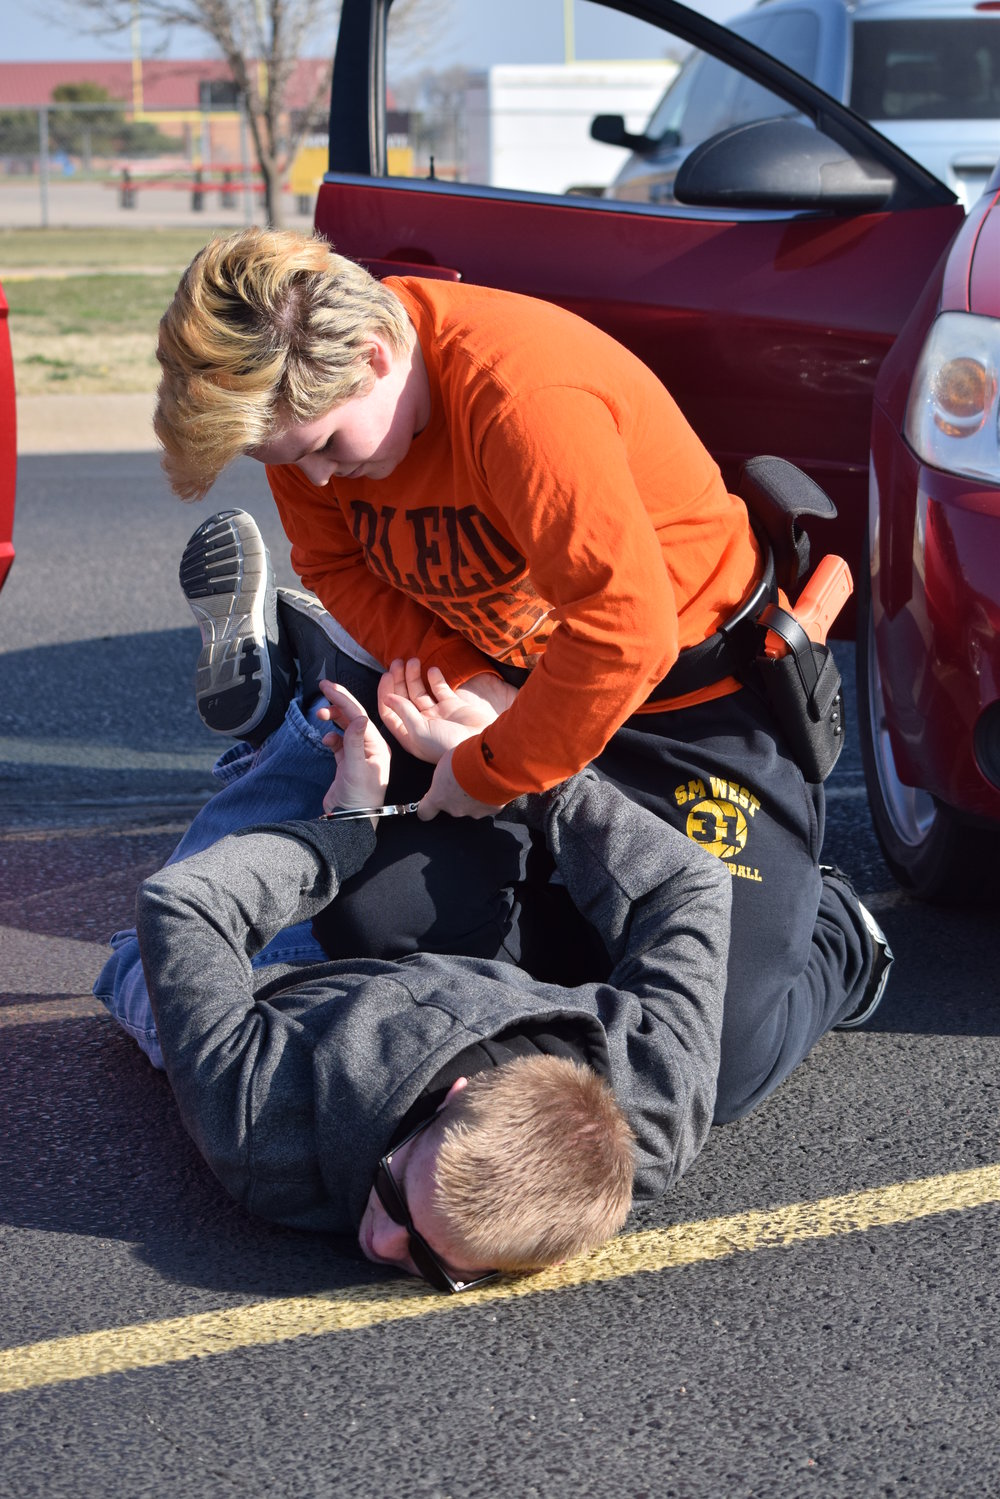 Law Enforcement student practices proper detainment.